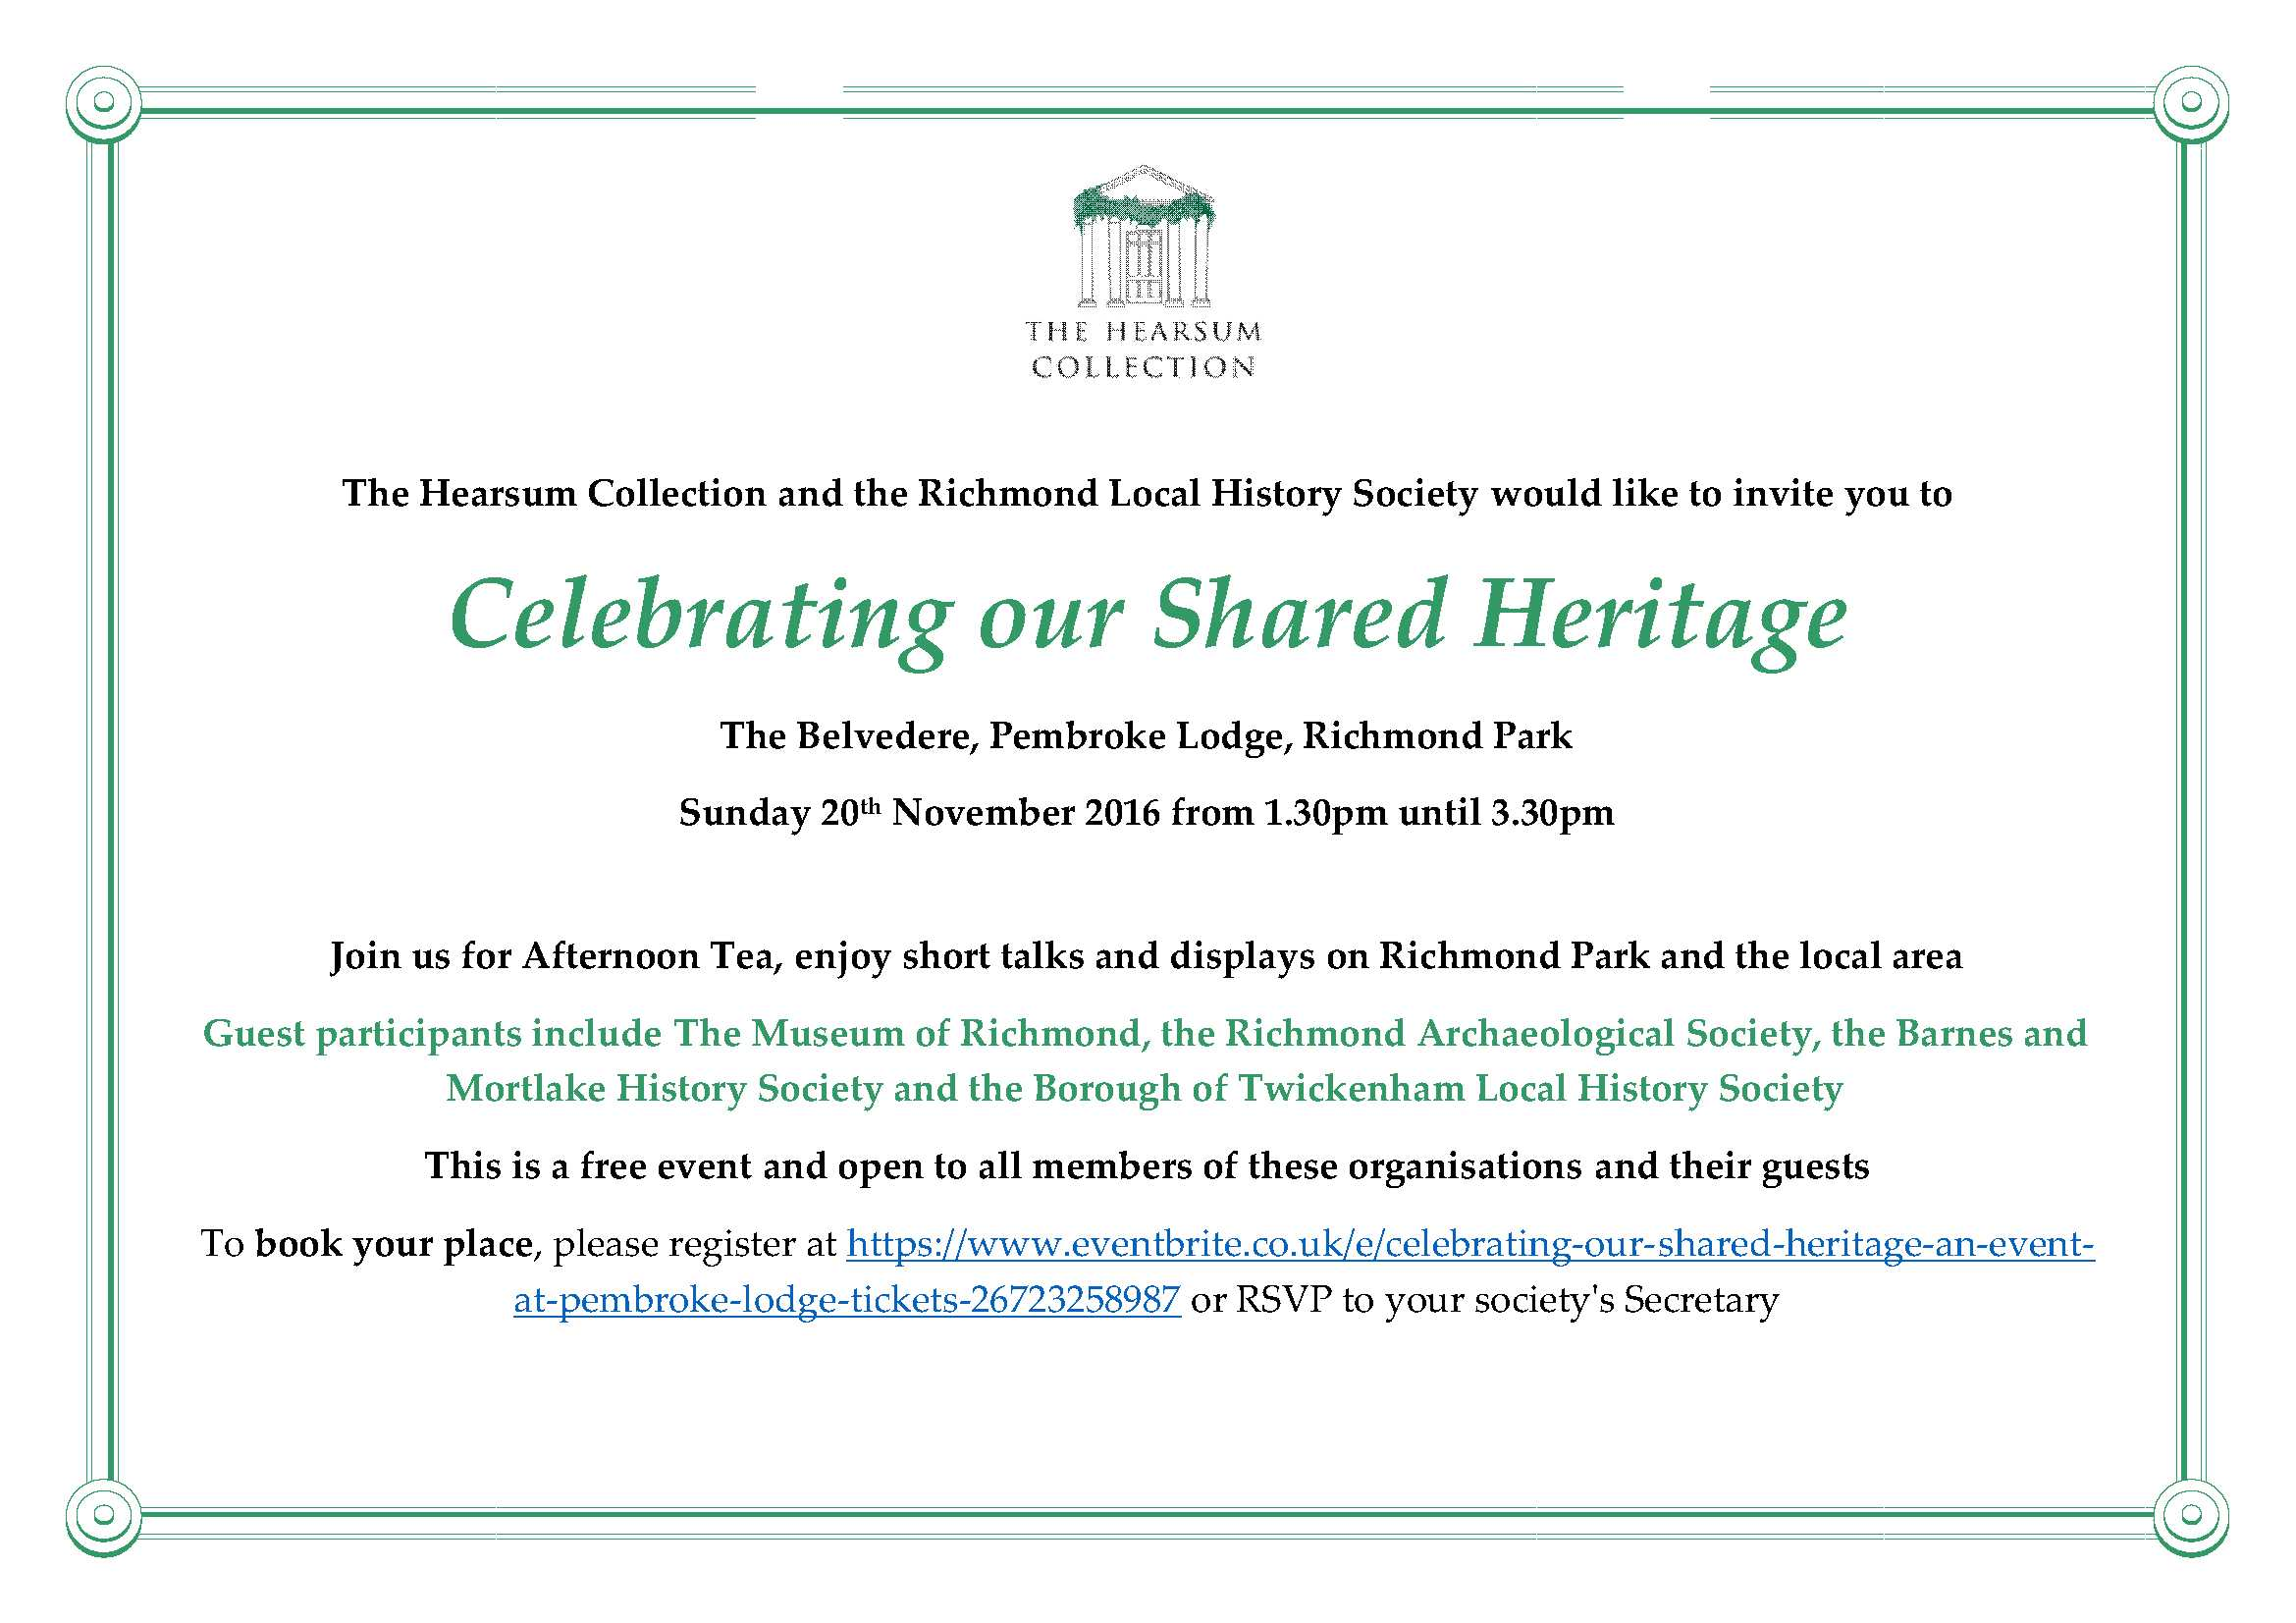 Invitation - The Hearsum Collection and the Richmond Local History Society revised 17.08.16